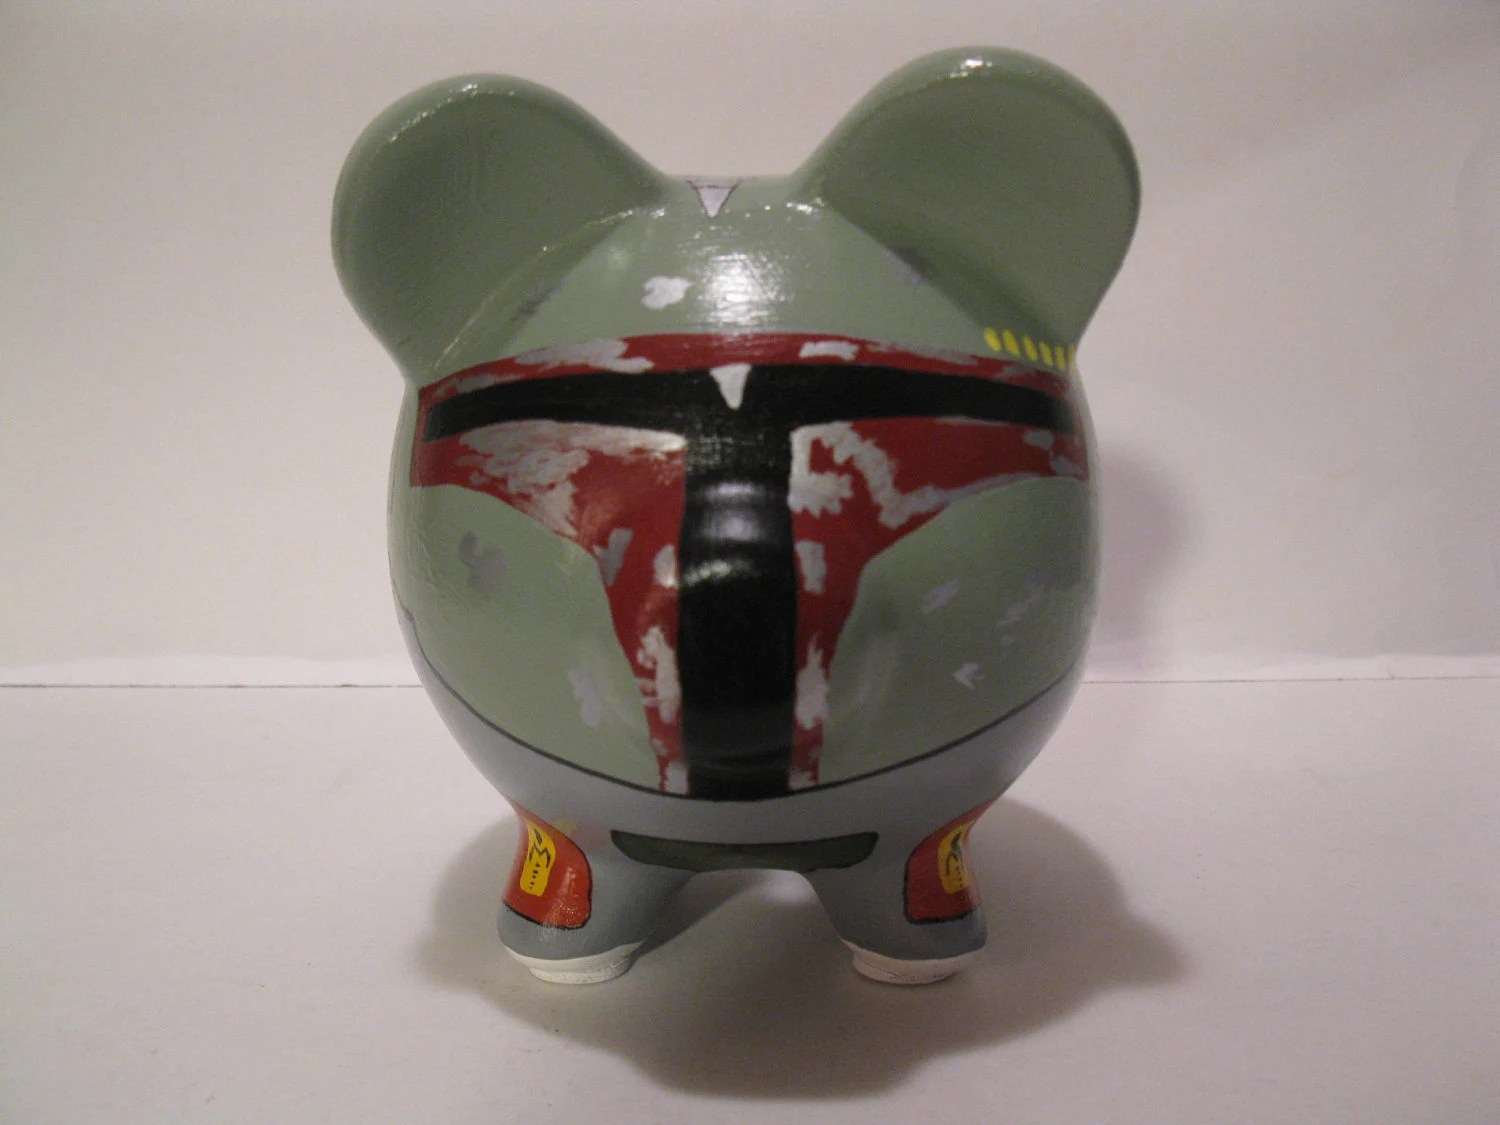 Star Wars Coin Banks Boba Fett Piggy Bank Inspired By Star Wars Made To Order